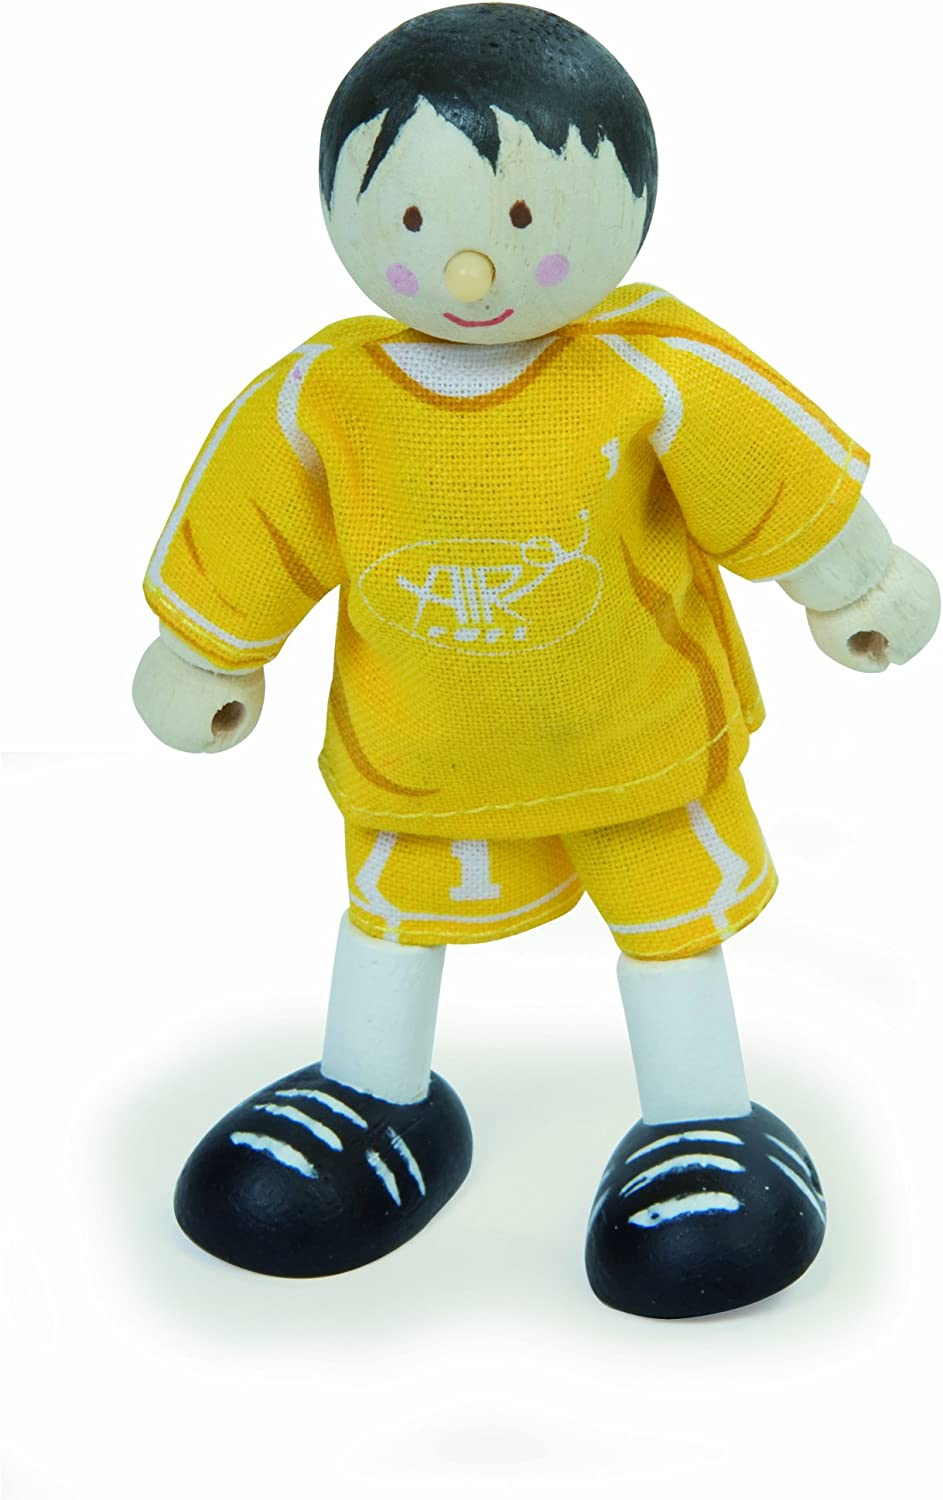 Le Toy Van Goal Keeper 2, Yellow